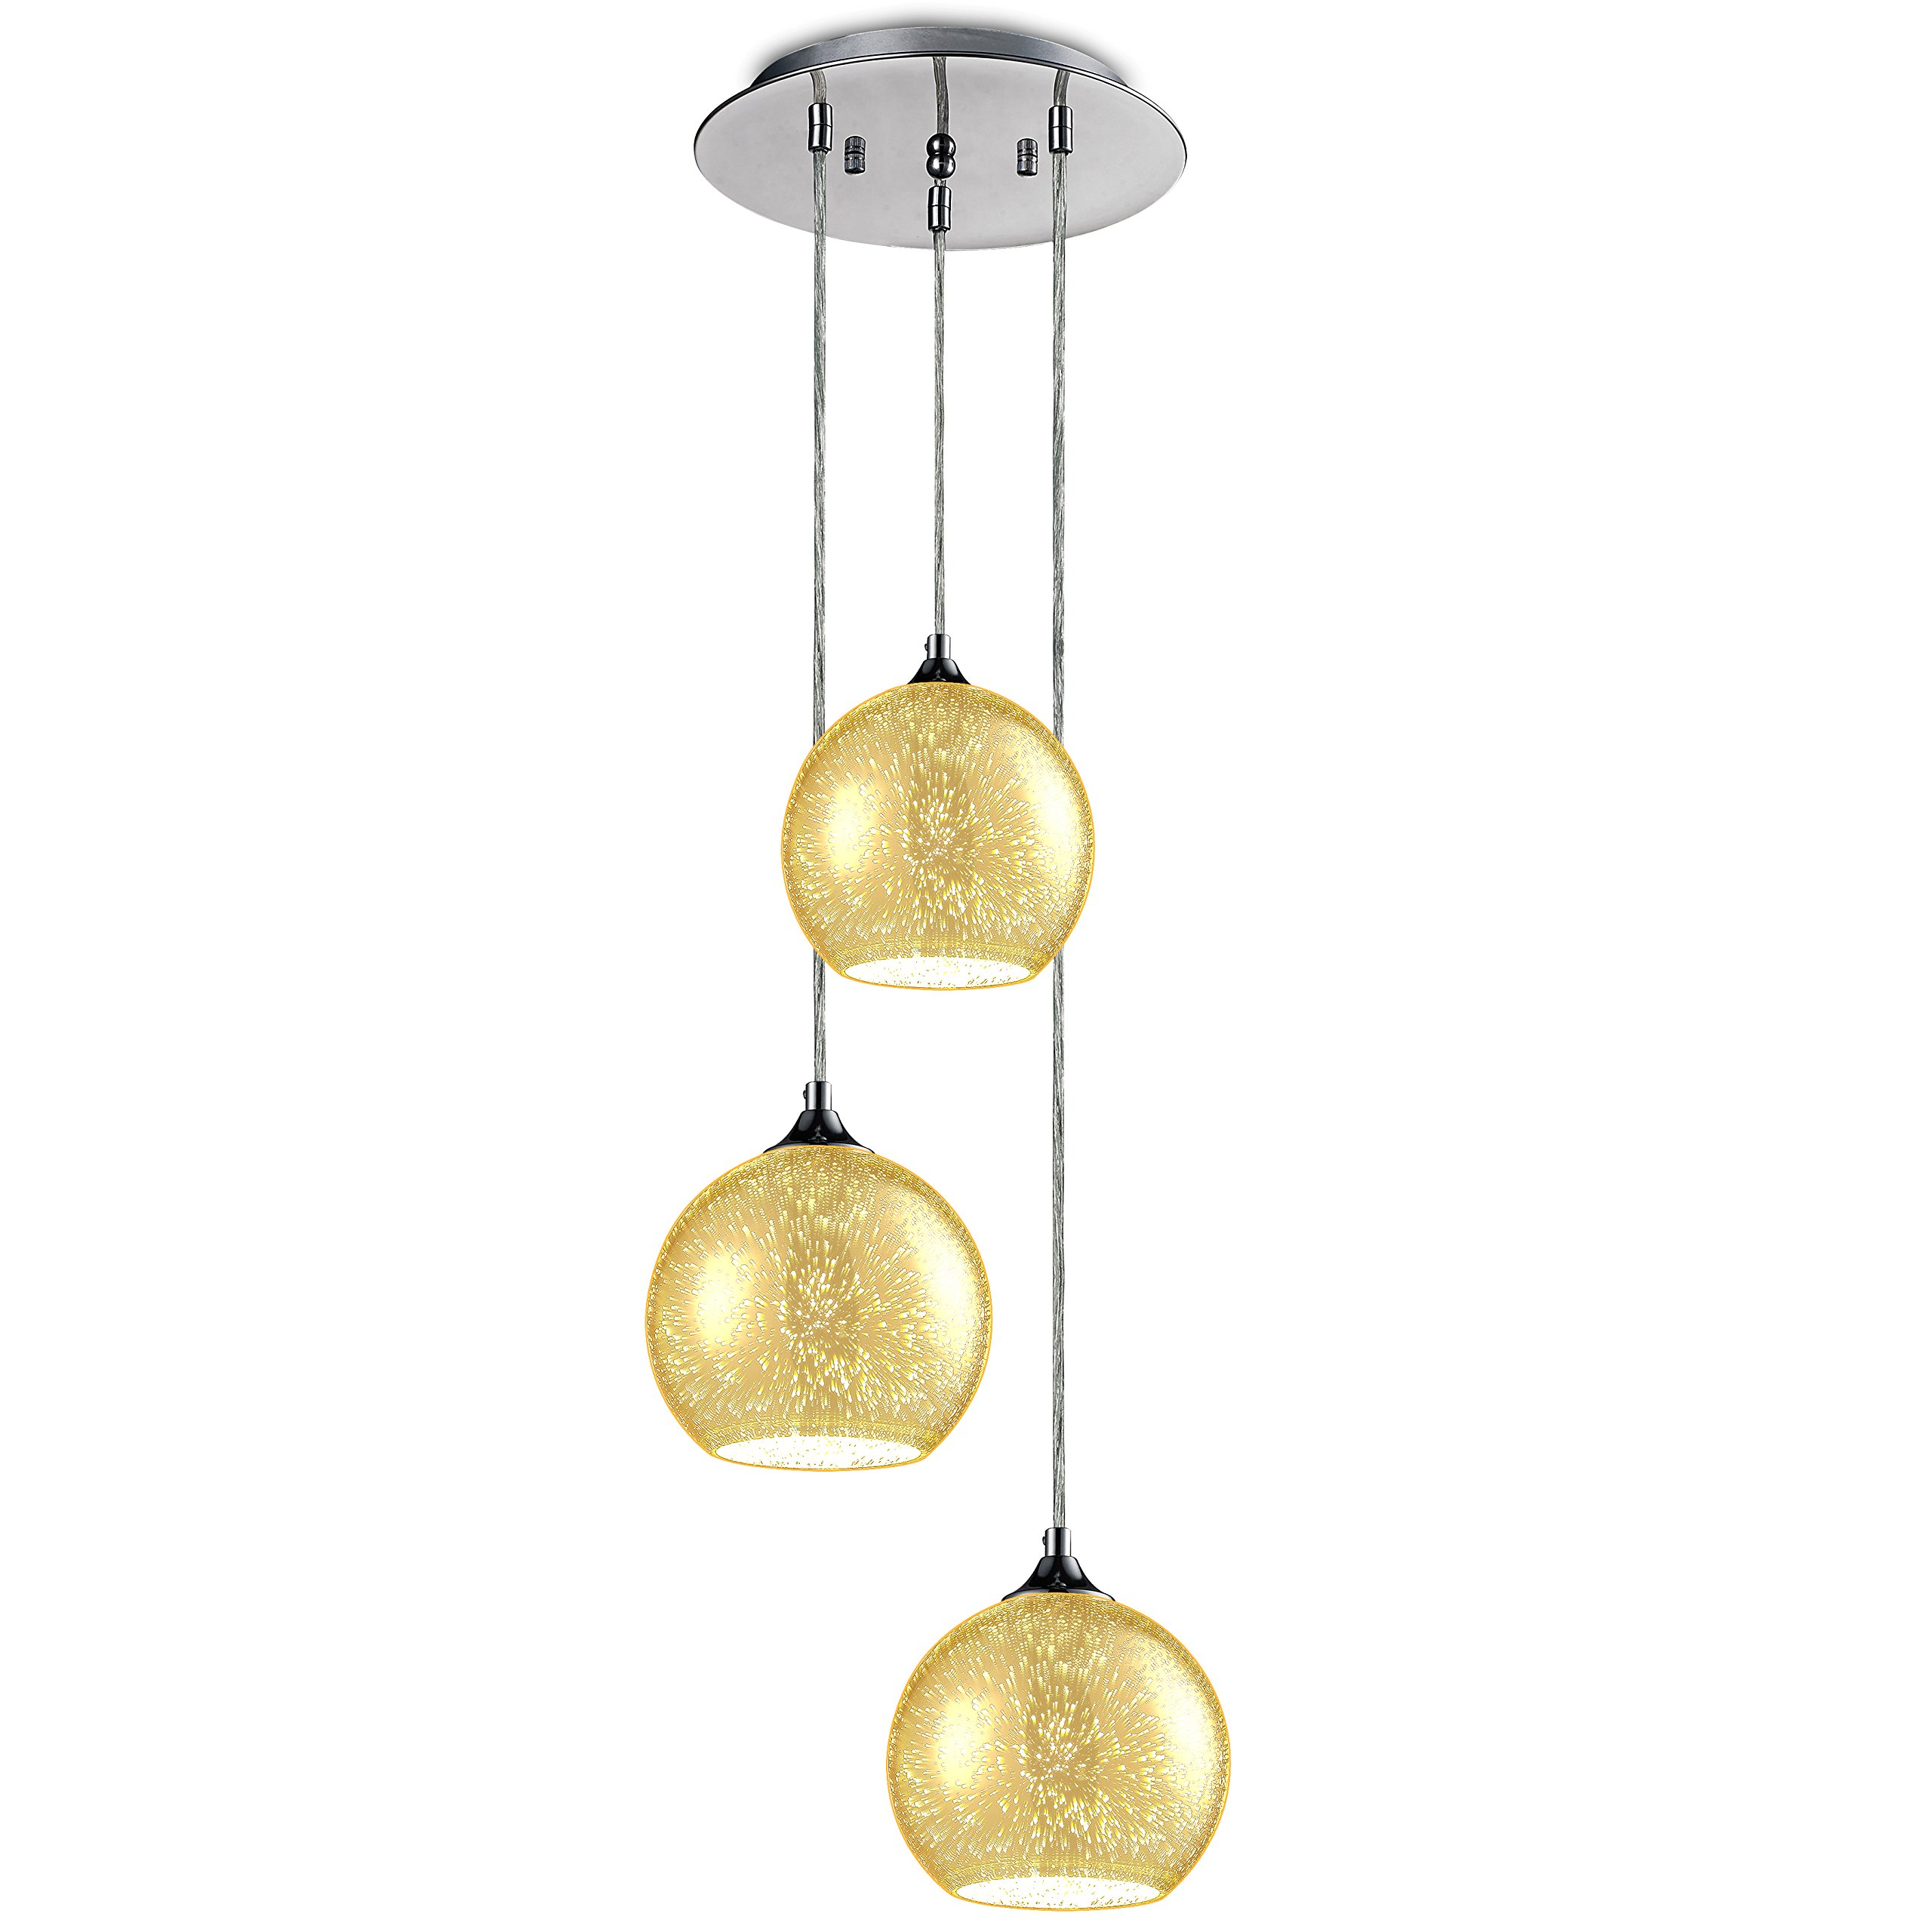 "SereneLife Home Lighting Fixture - Triple Pendant Hanging Lamp Ceiling Light with 3 7.1"" Circular Sphere Shaped Dome Globes, Sculpted Glass Accent, Adjustable Length and Screw-in Bulb Socket (SLLMP34) by SereneLife"